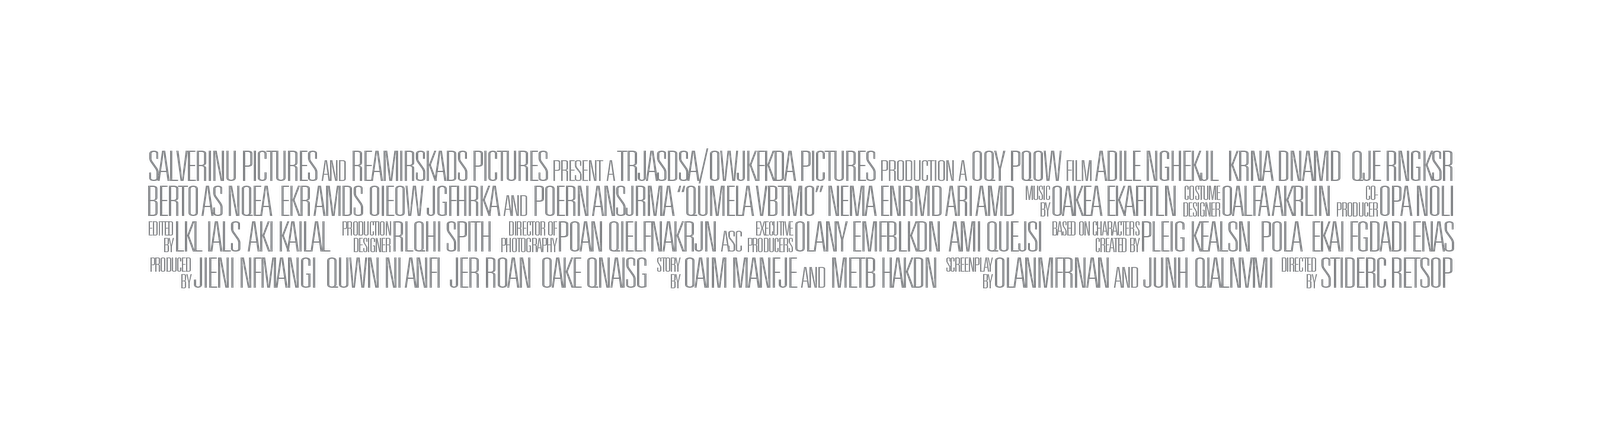 Movie poster credits template png. Lines greek billing